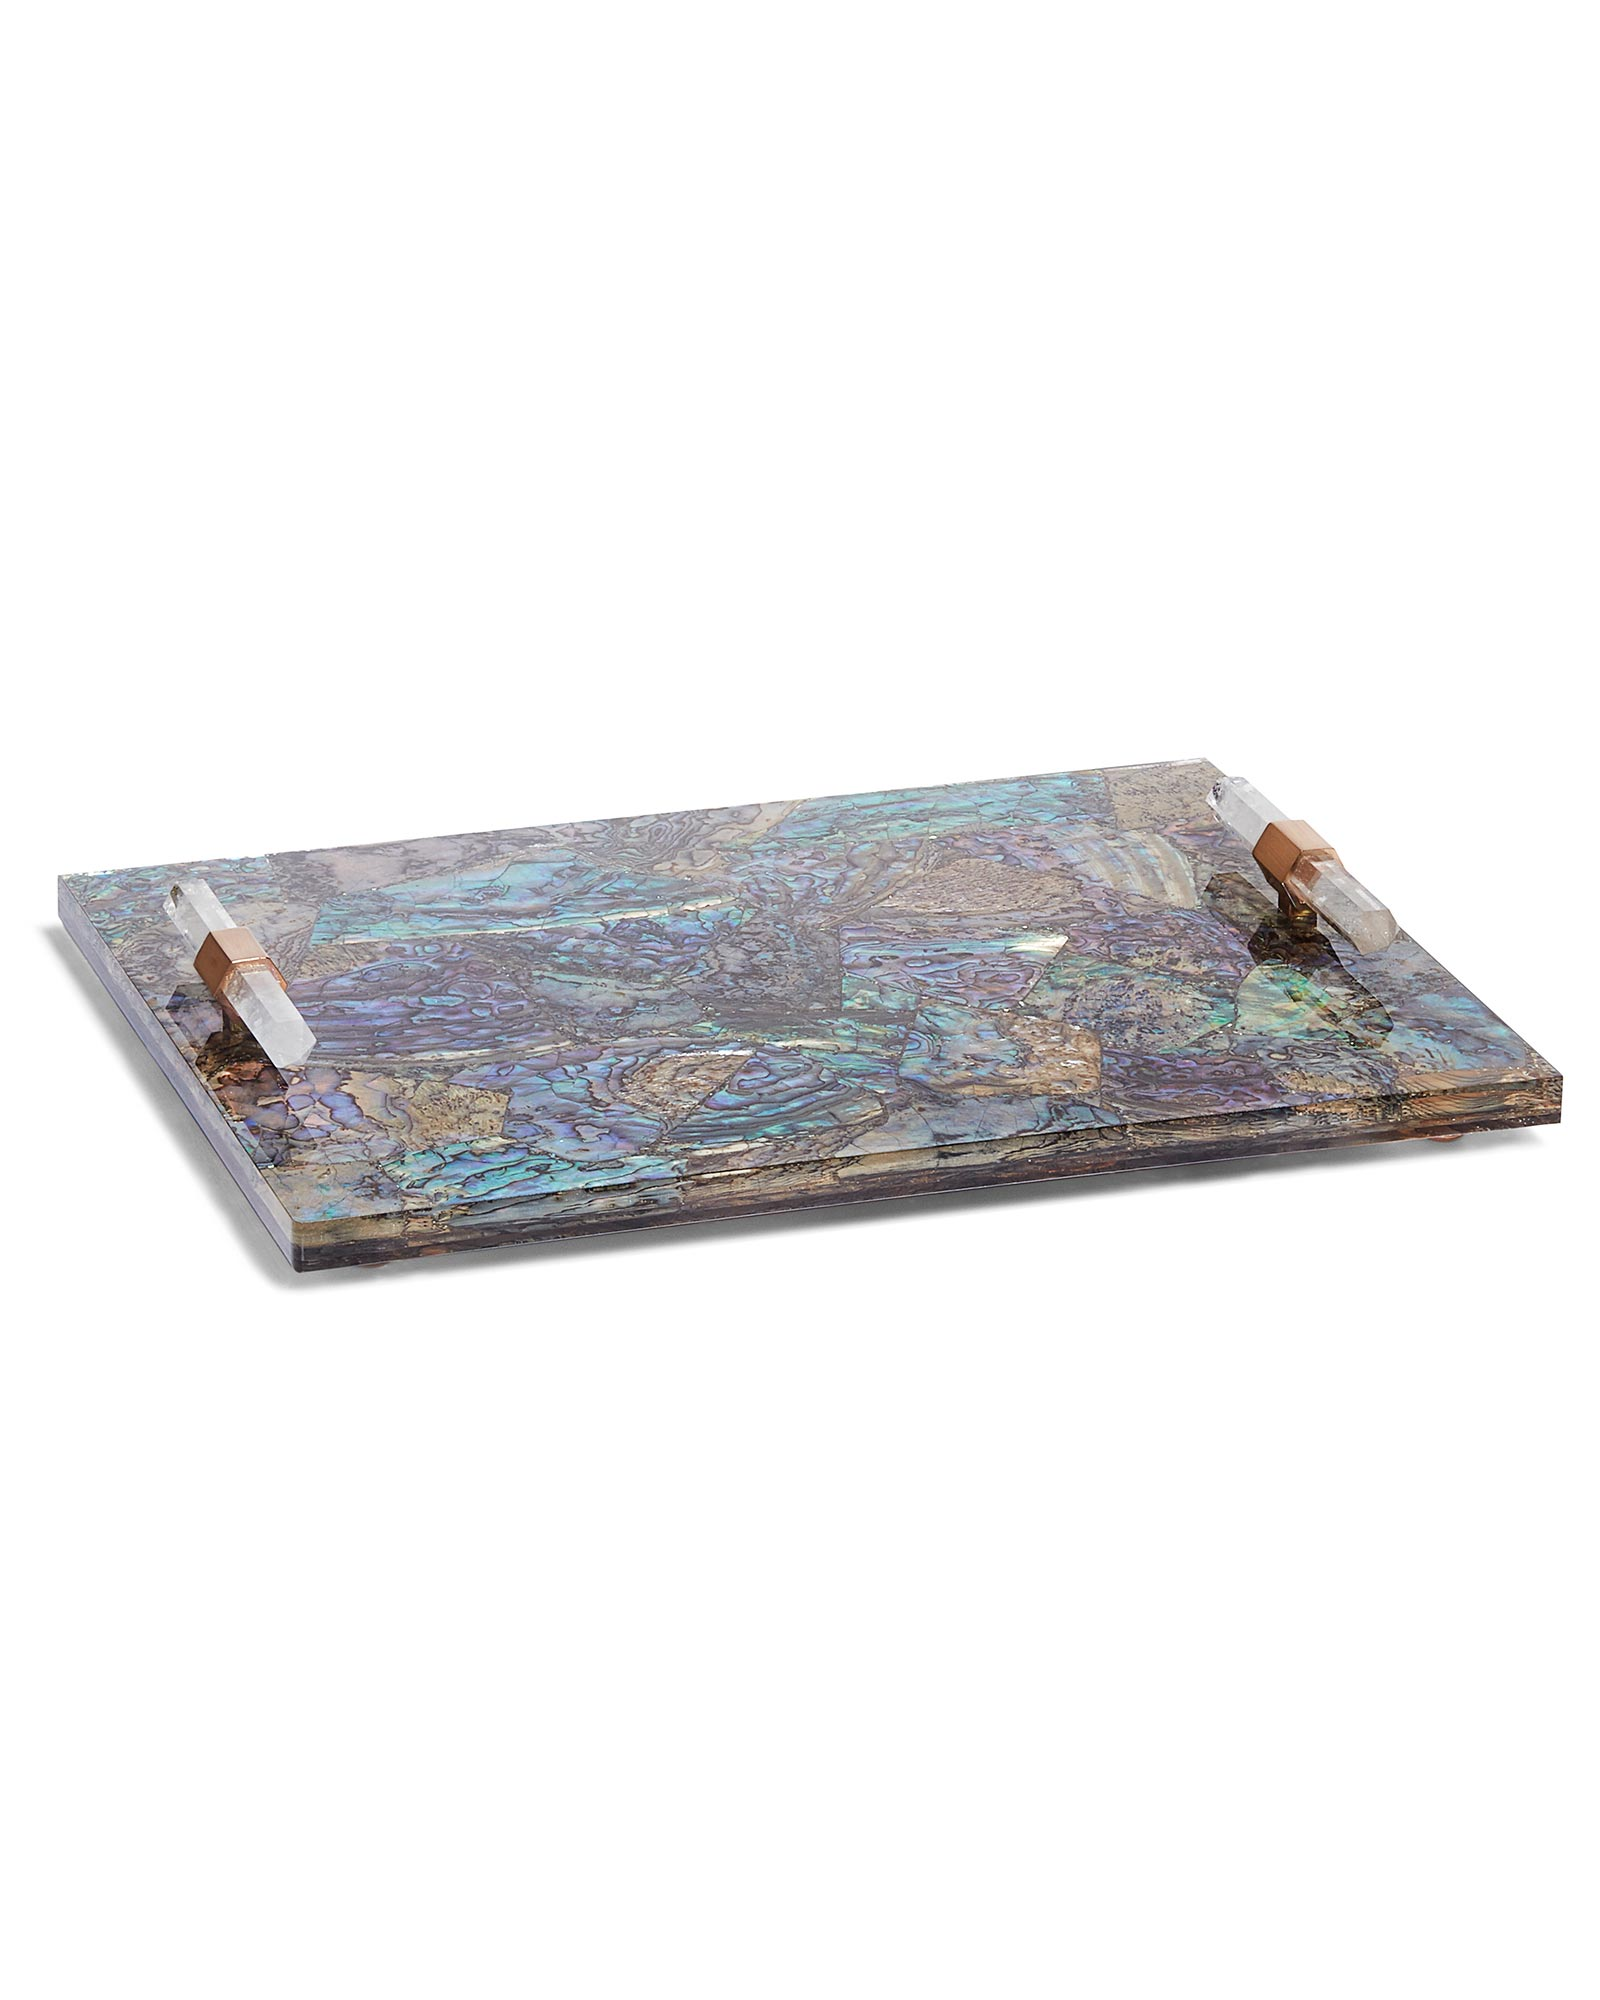 Small Tray in Crackle Abalone Shell